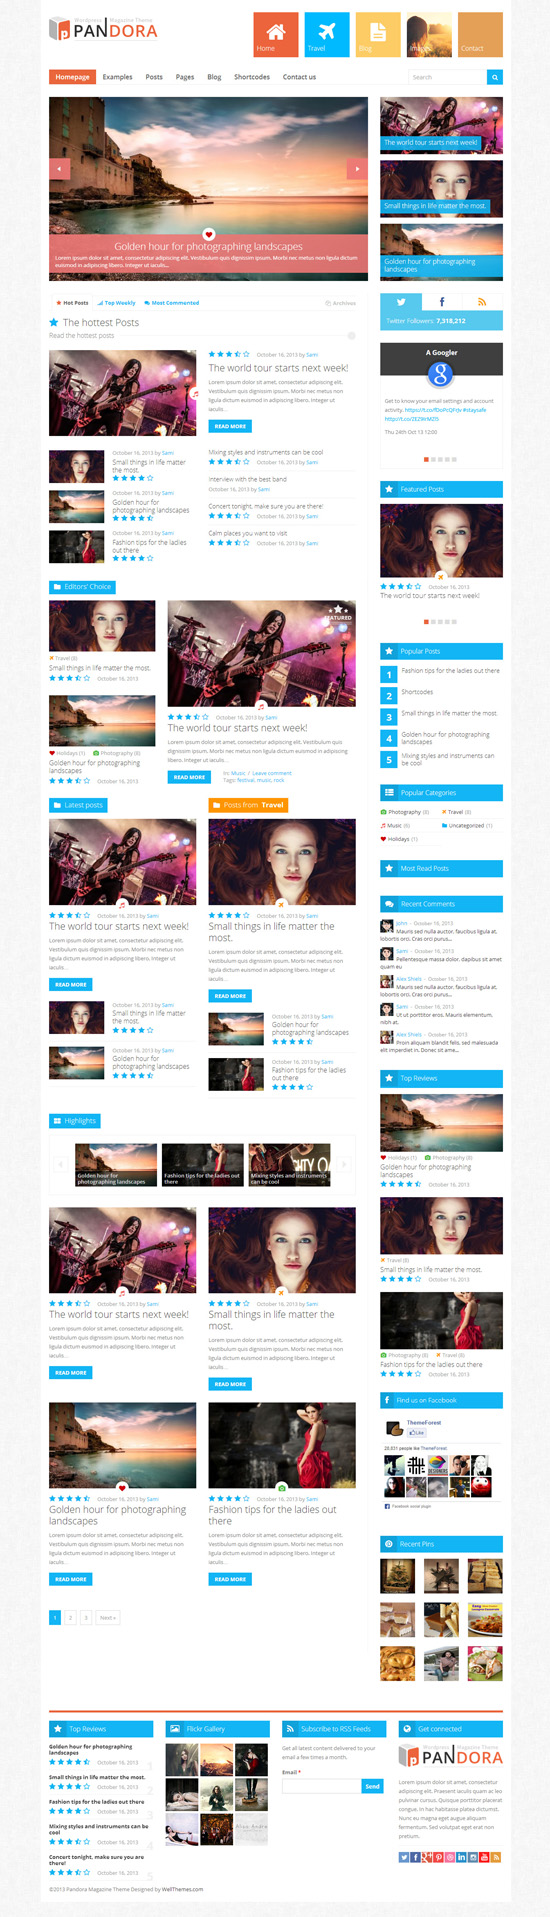 Pandora - Responsive WordPress Magazine Theme